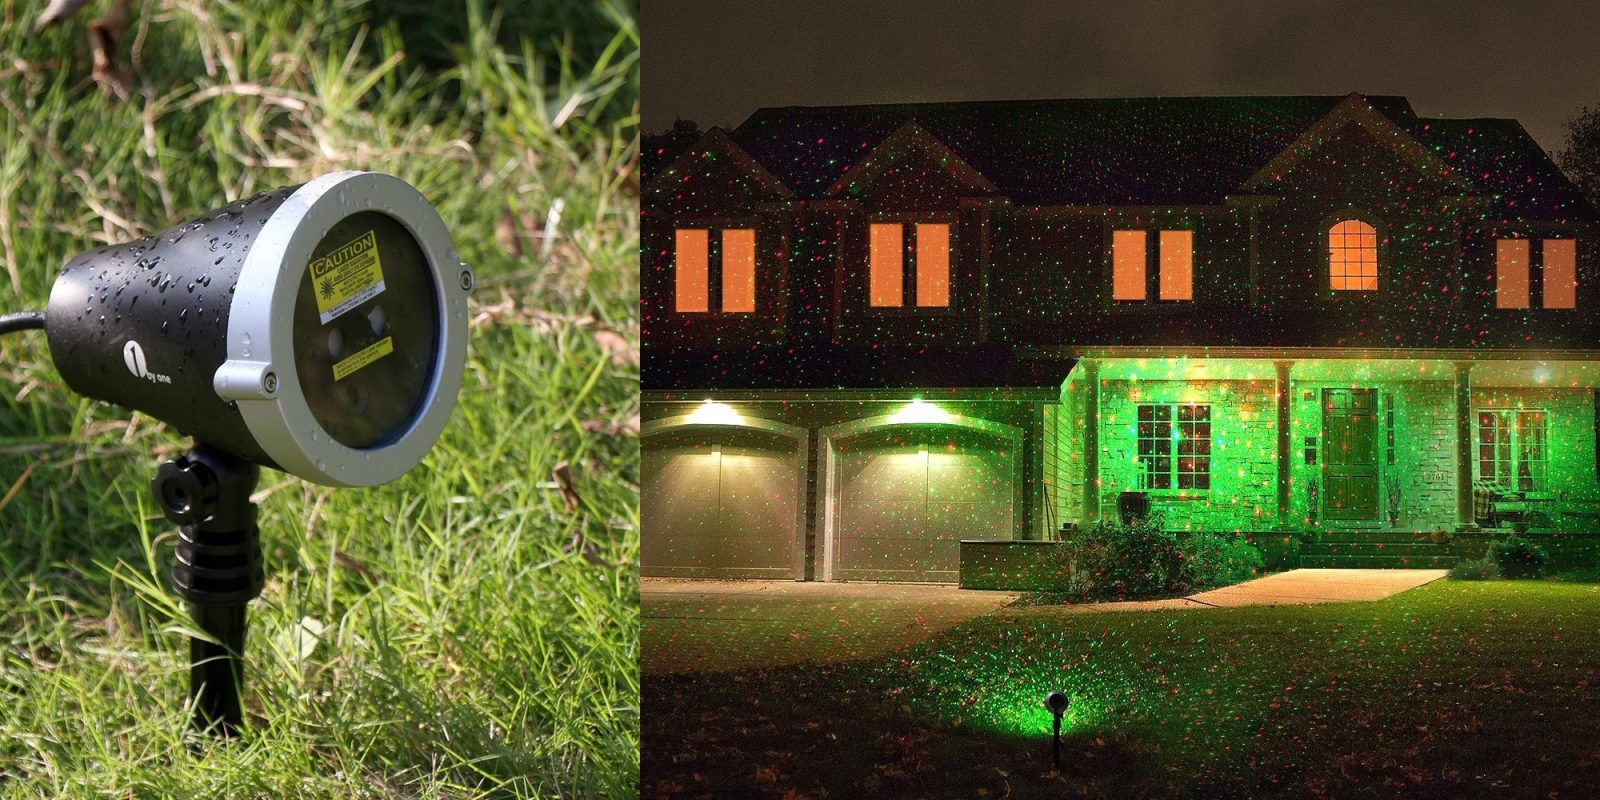 Today Only Amazon Has The 1byone Outdoor Laser Light